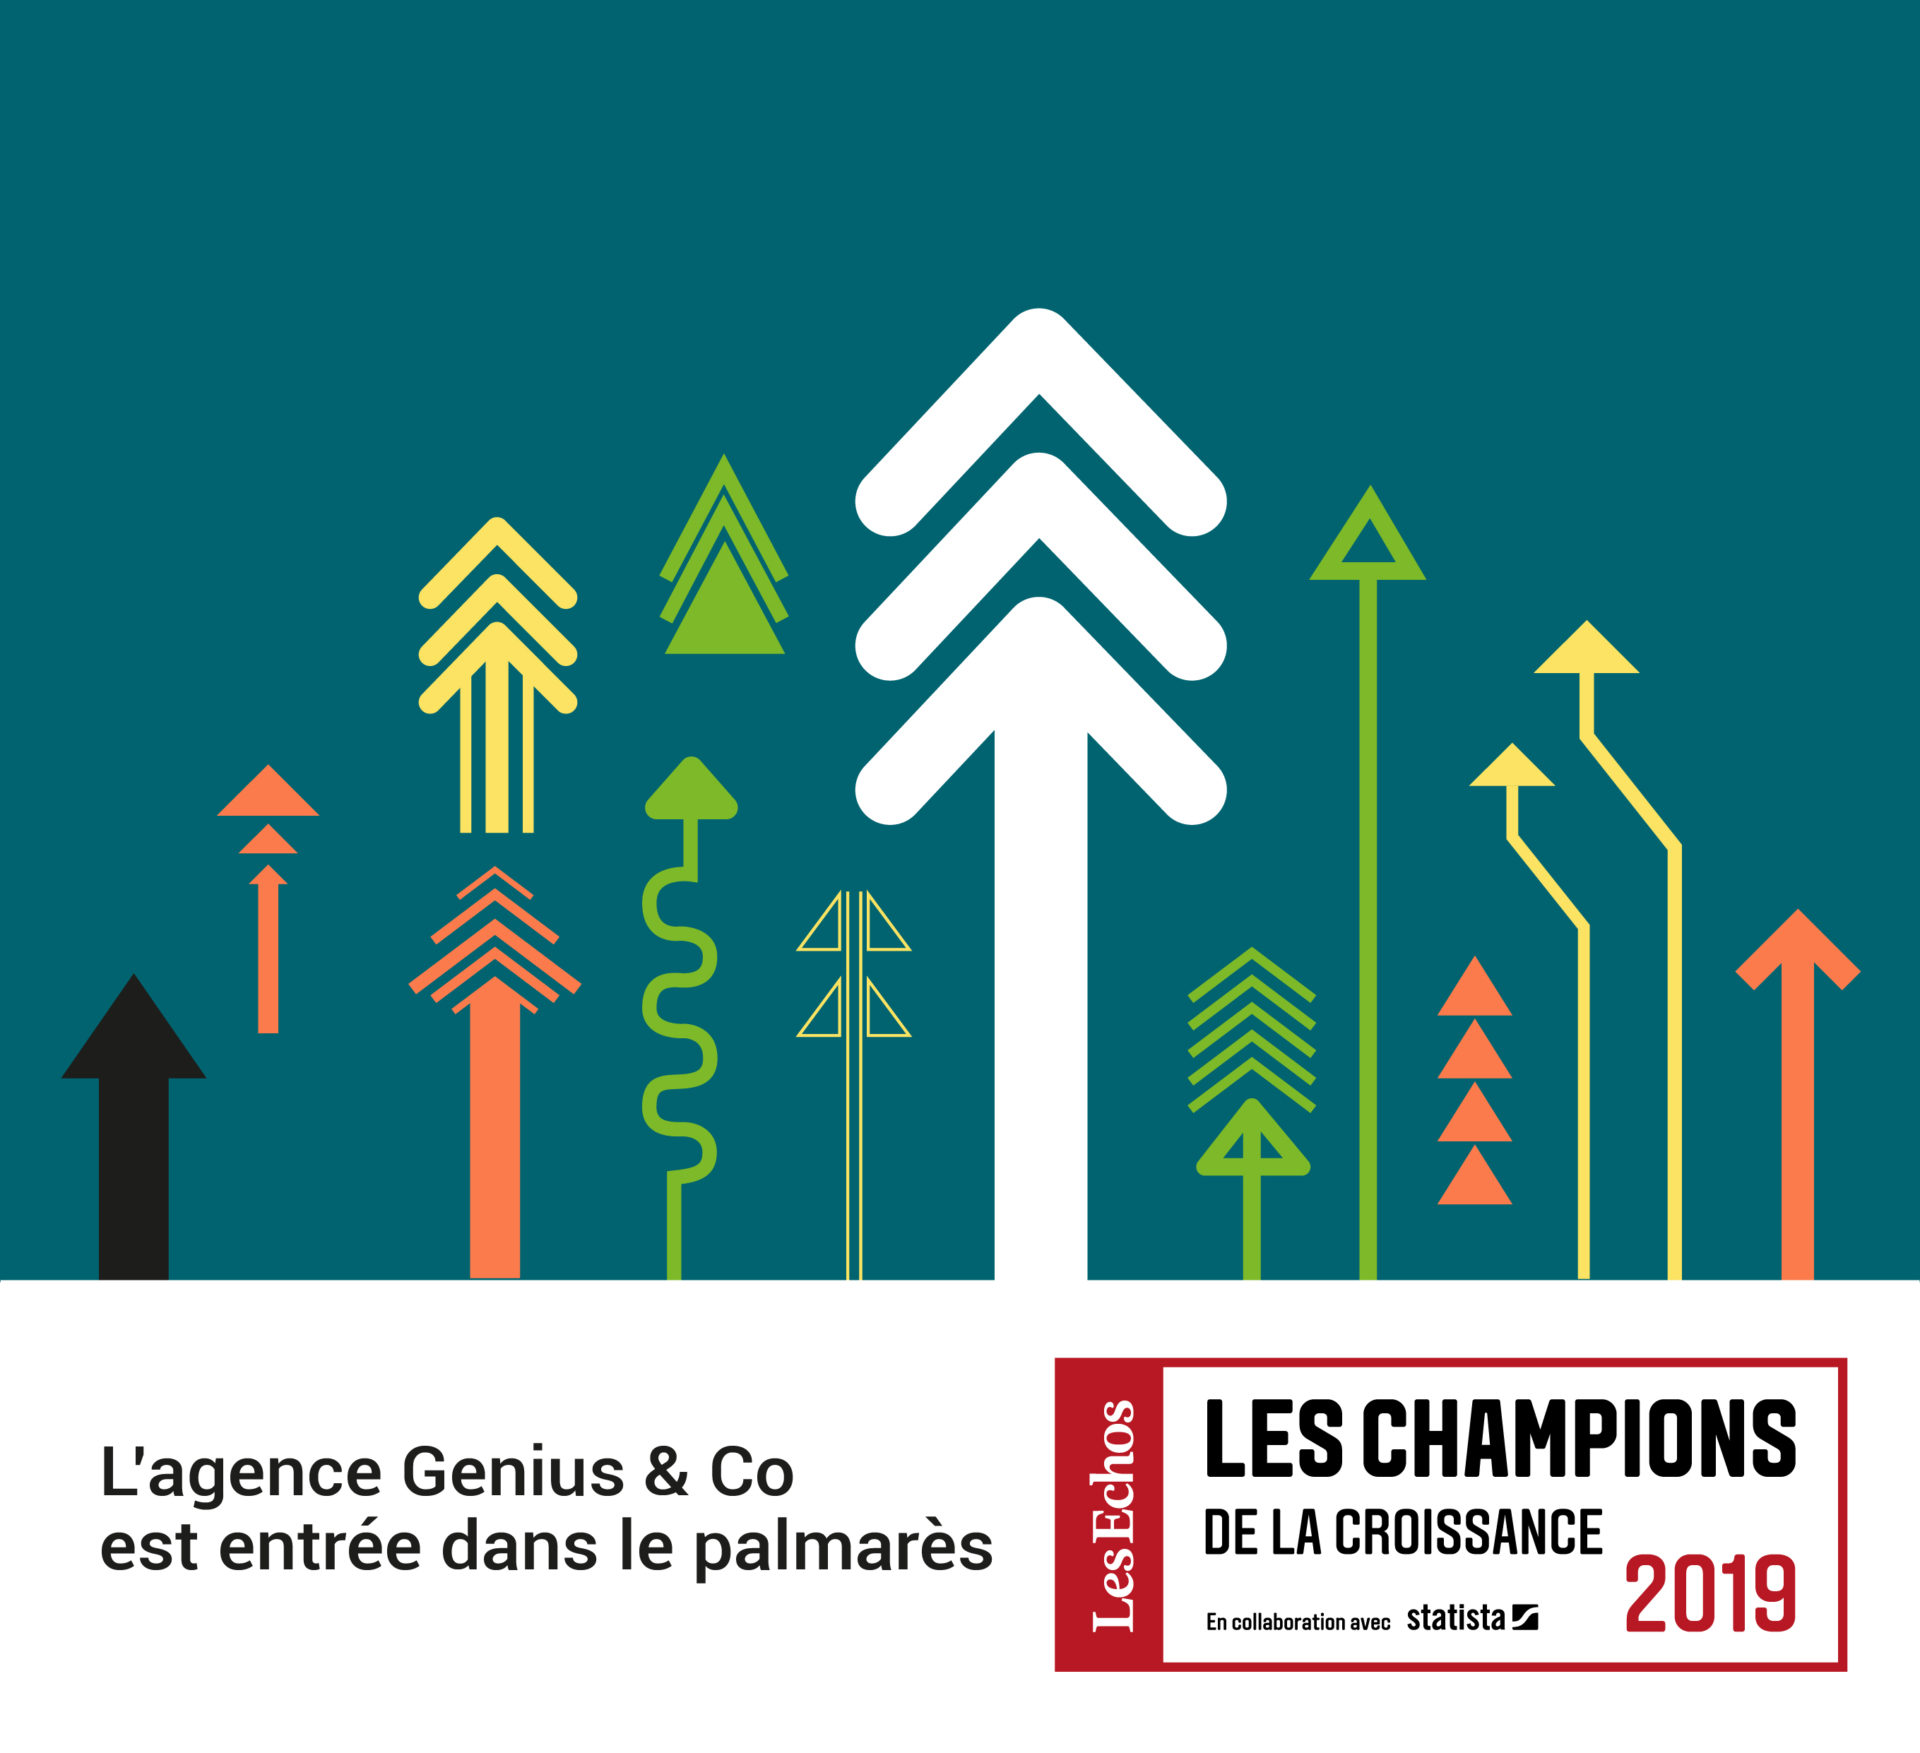 champion-croissance-genius-and-co-2019